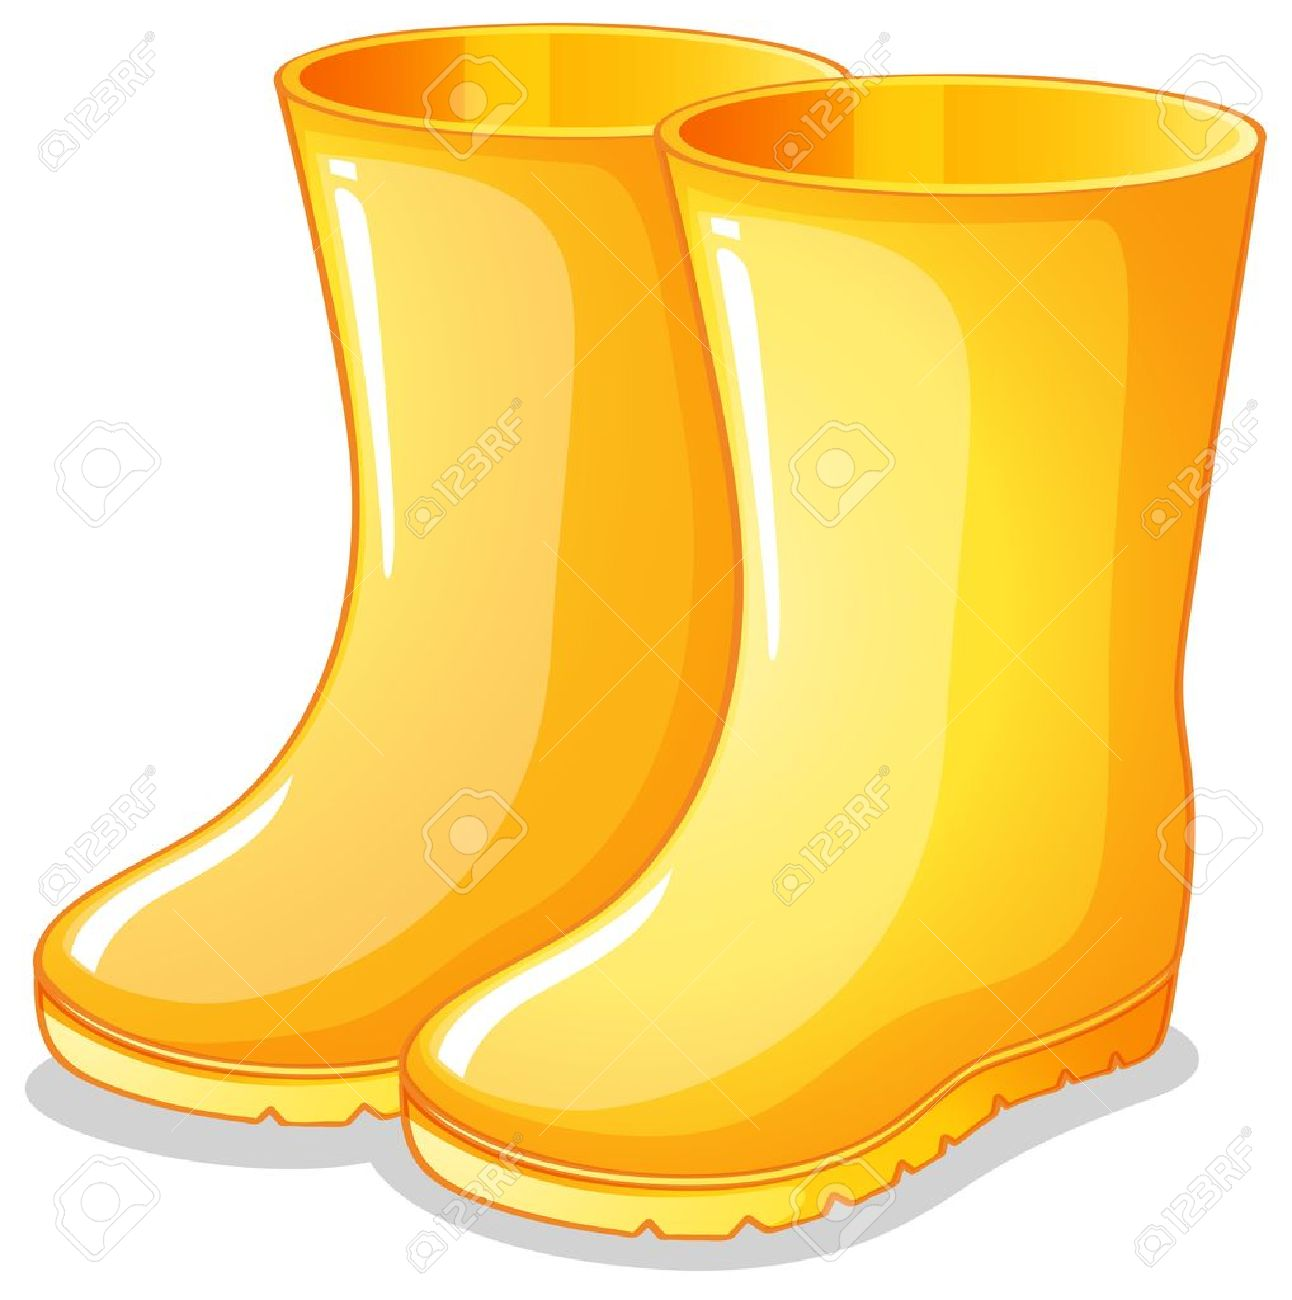 wellington: Illustration of the yellow rubber boots on a white background